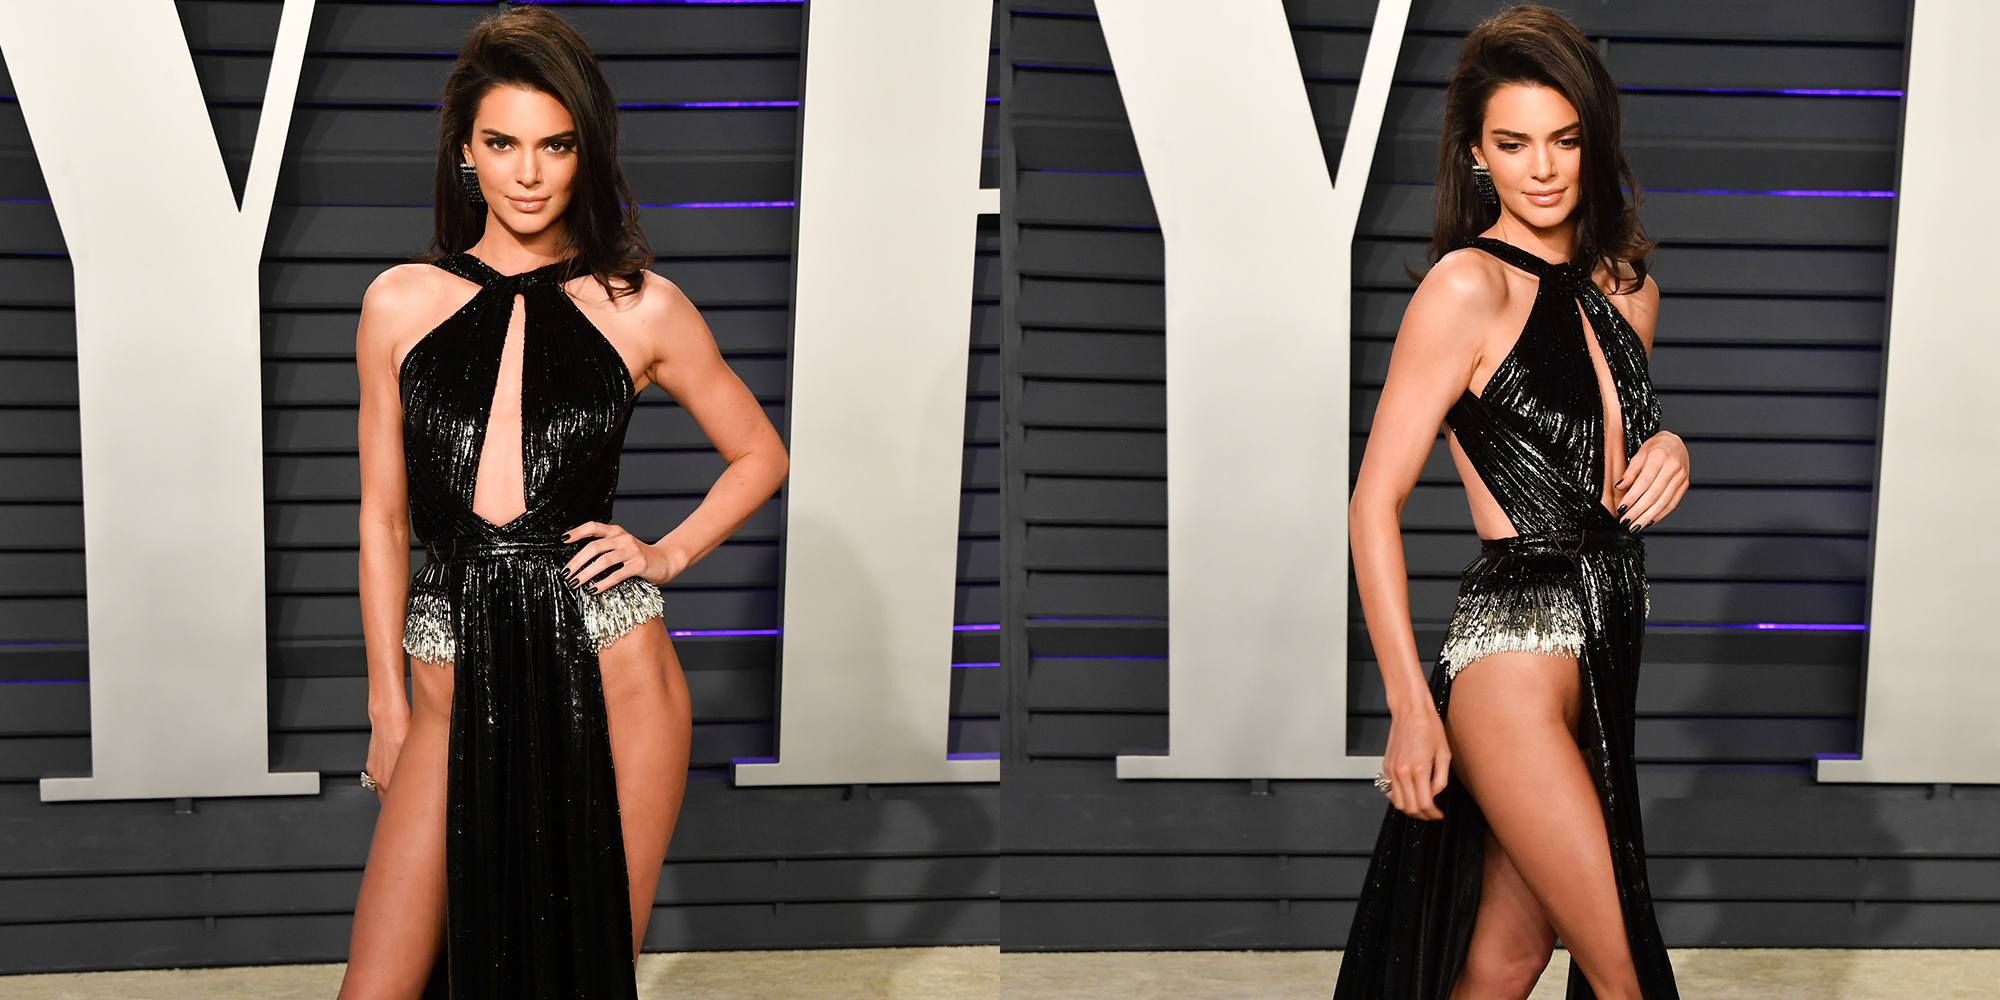 793c8ebafb Kendall Jenner Wears Naked Dress to Oscars 2019 After Party